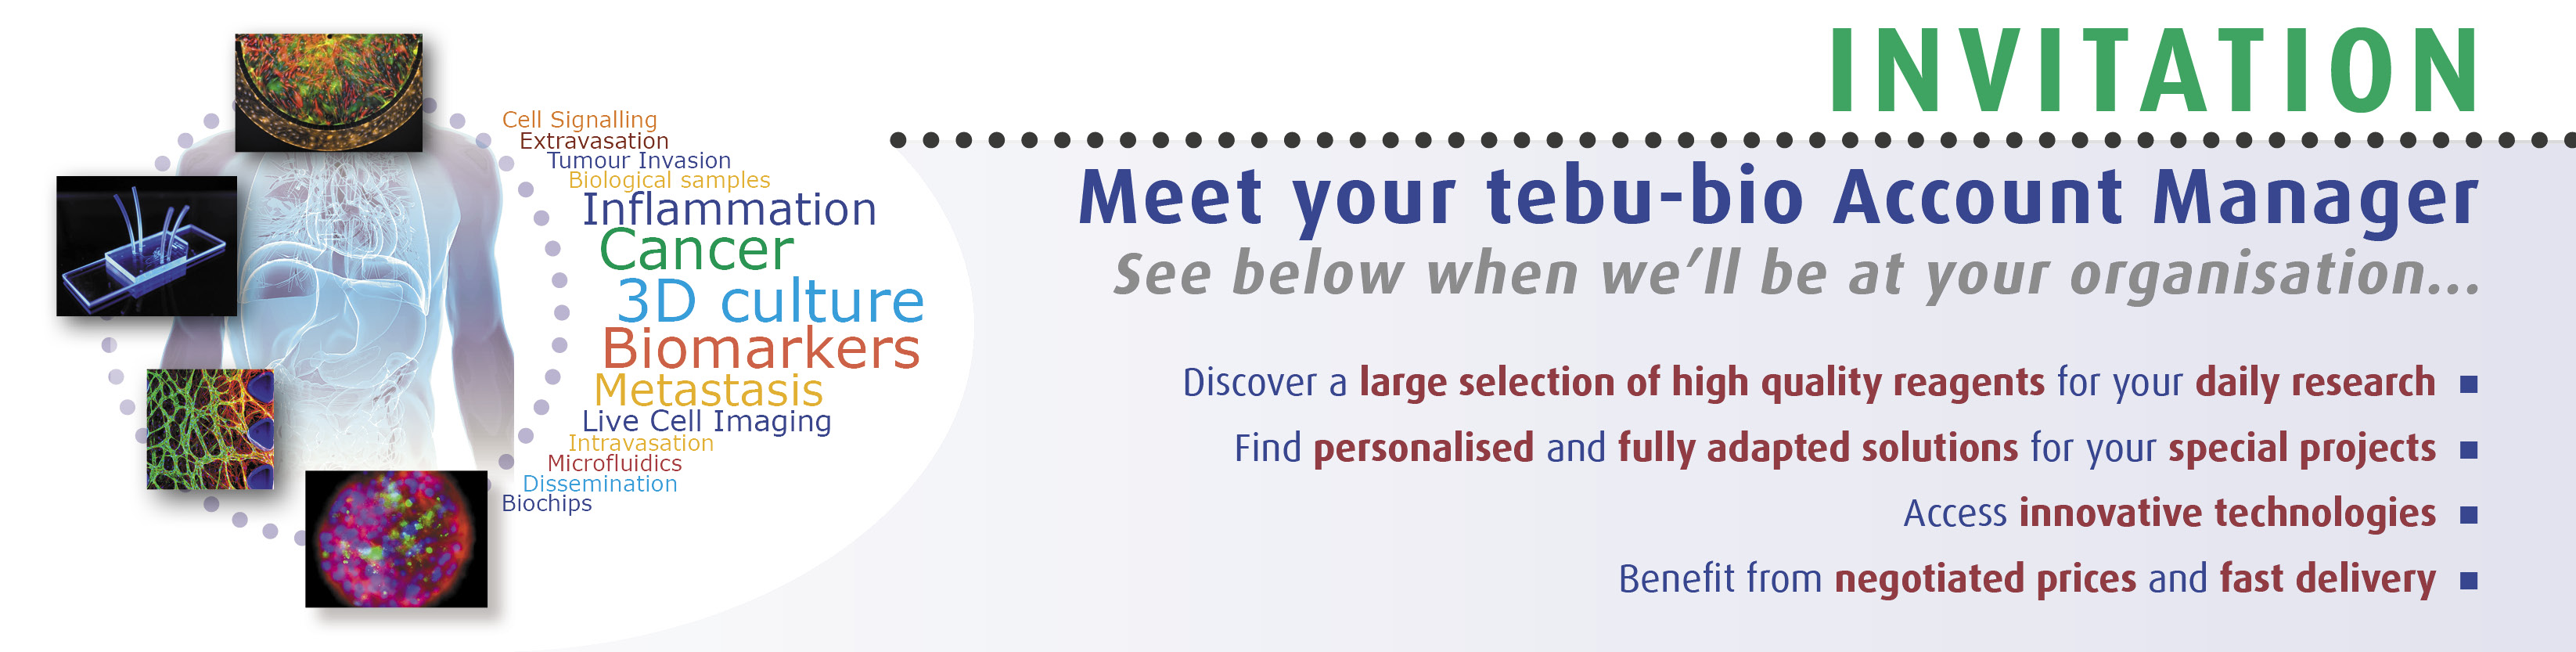 tebu-bio will be at Meet your tebu-bio Account Manager - Institut de Génétique Humaine - Montpellier